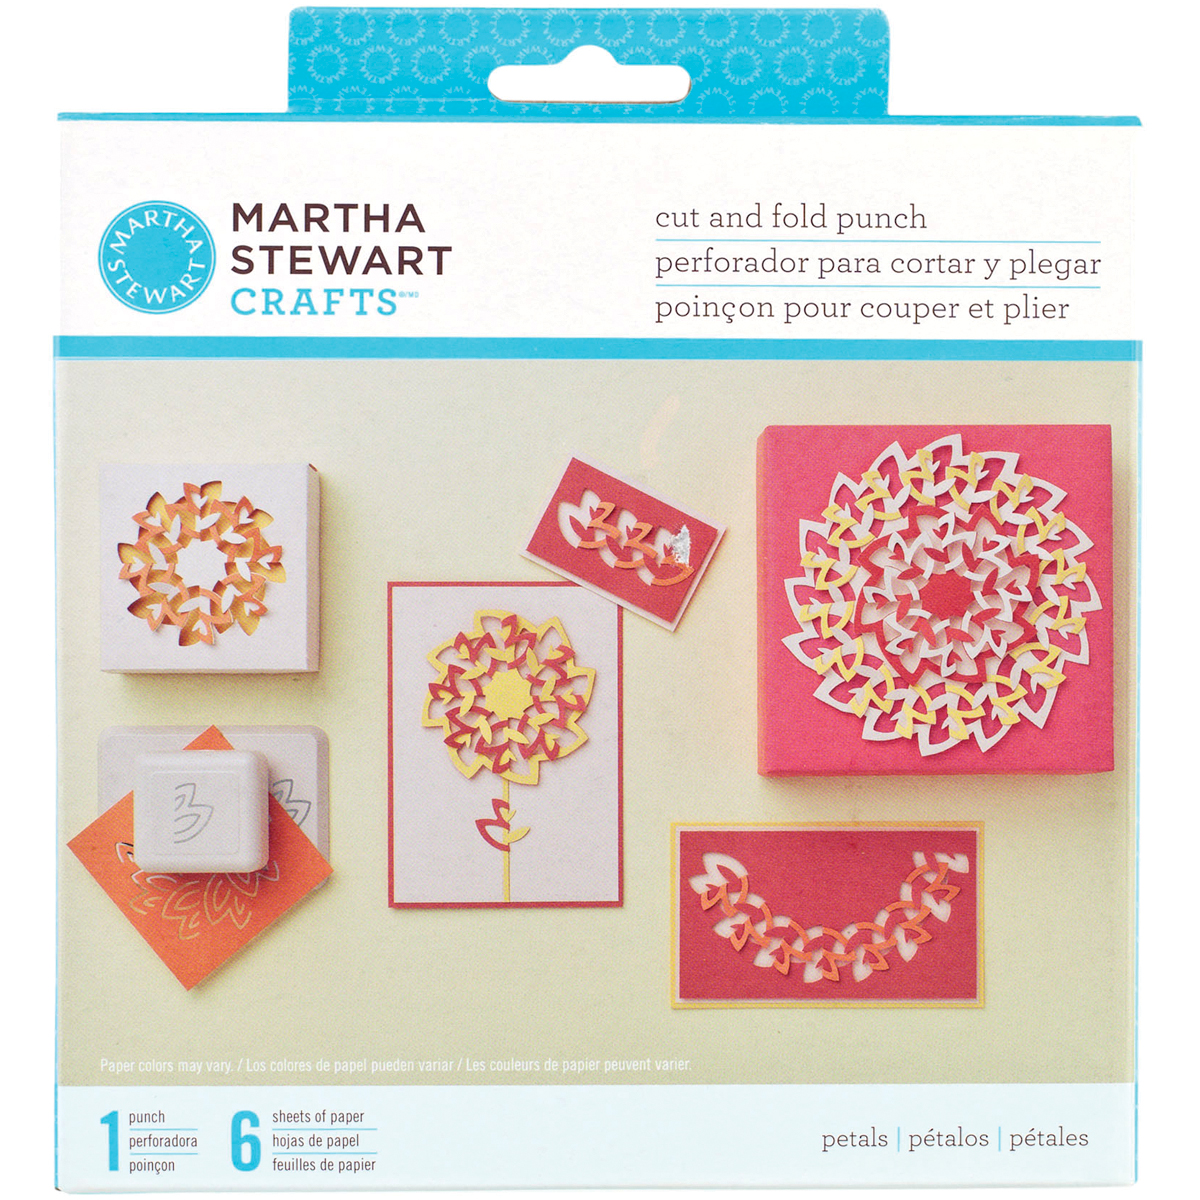 Martha Stewart Crafts Cut And Fold Punch You Choose Your Design 1 Punch 6 Paper Other Home Arts & Crafts Home Arts & Crafts